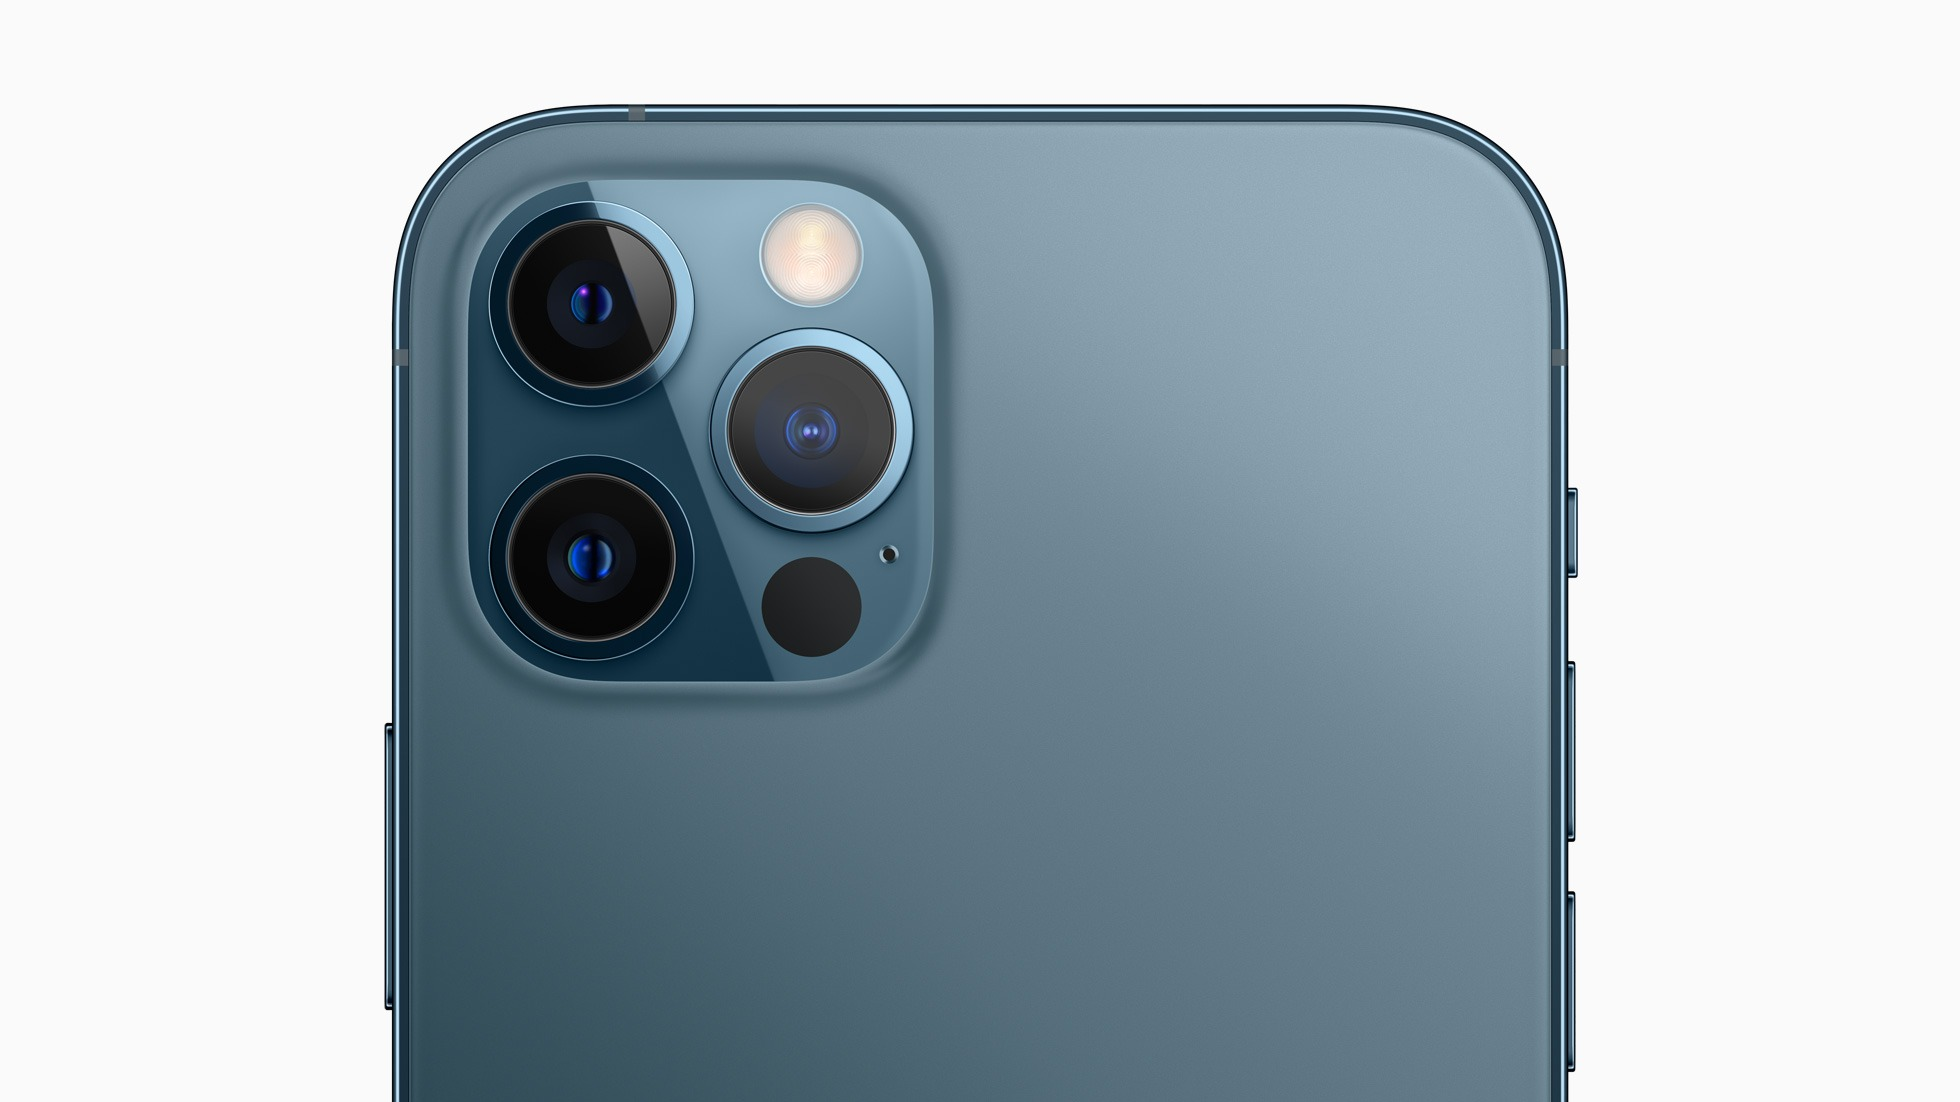 The iPhone 12 Pro's camera array.